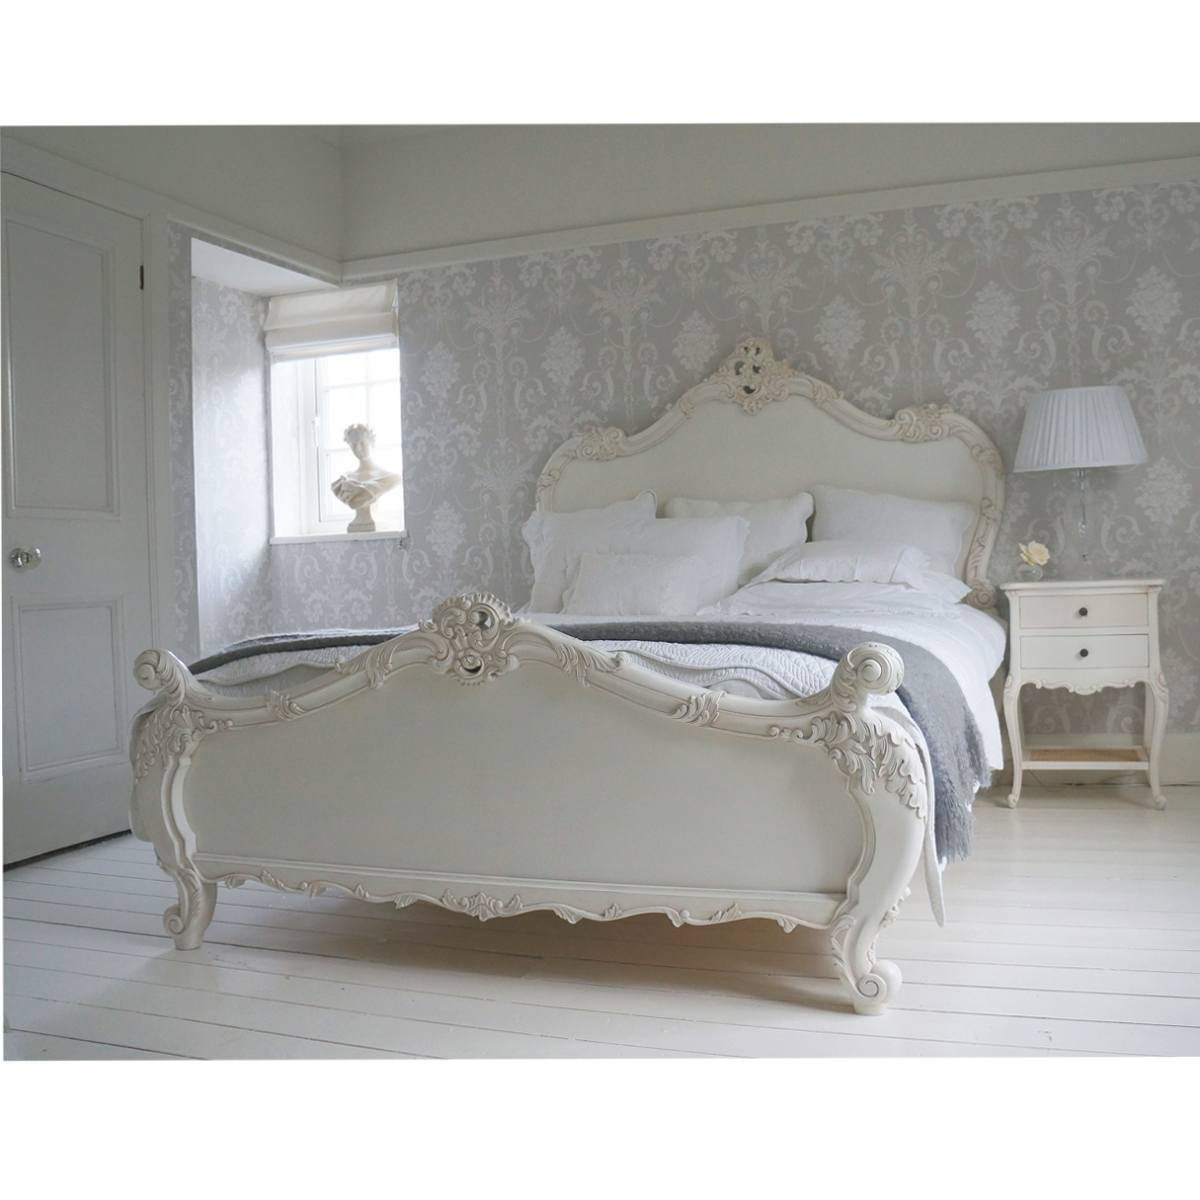 Provencal sassy white french bed french bedroom company for French style bedroom furniture